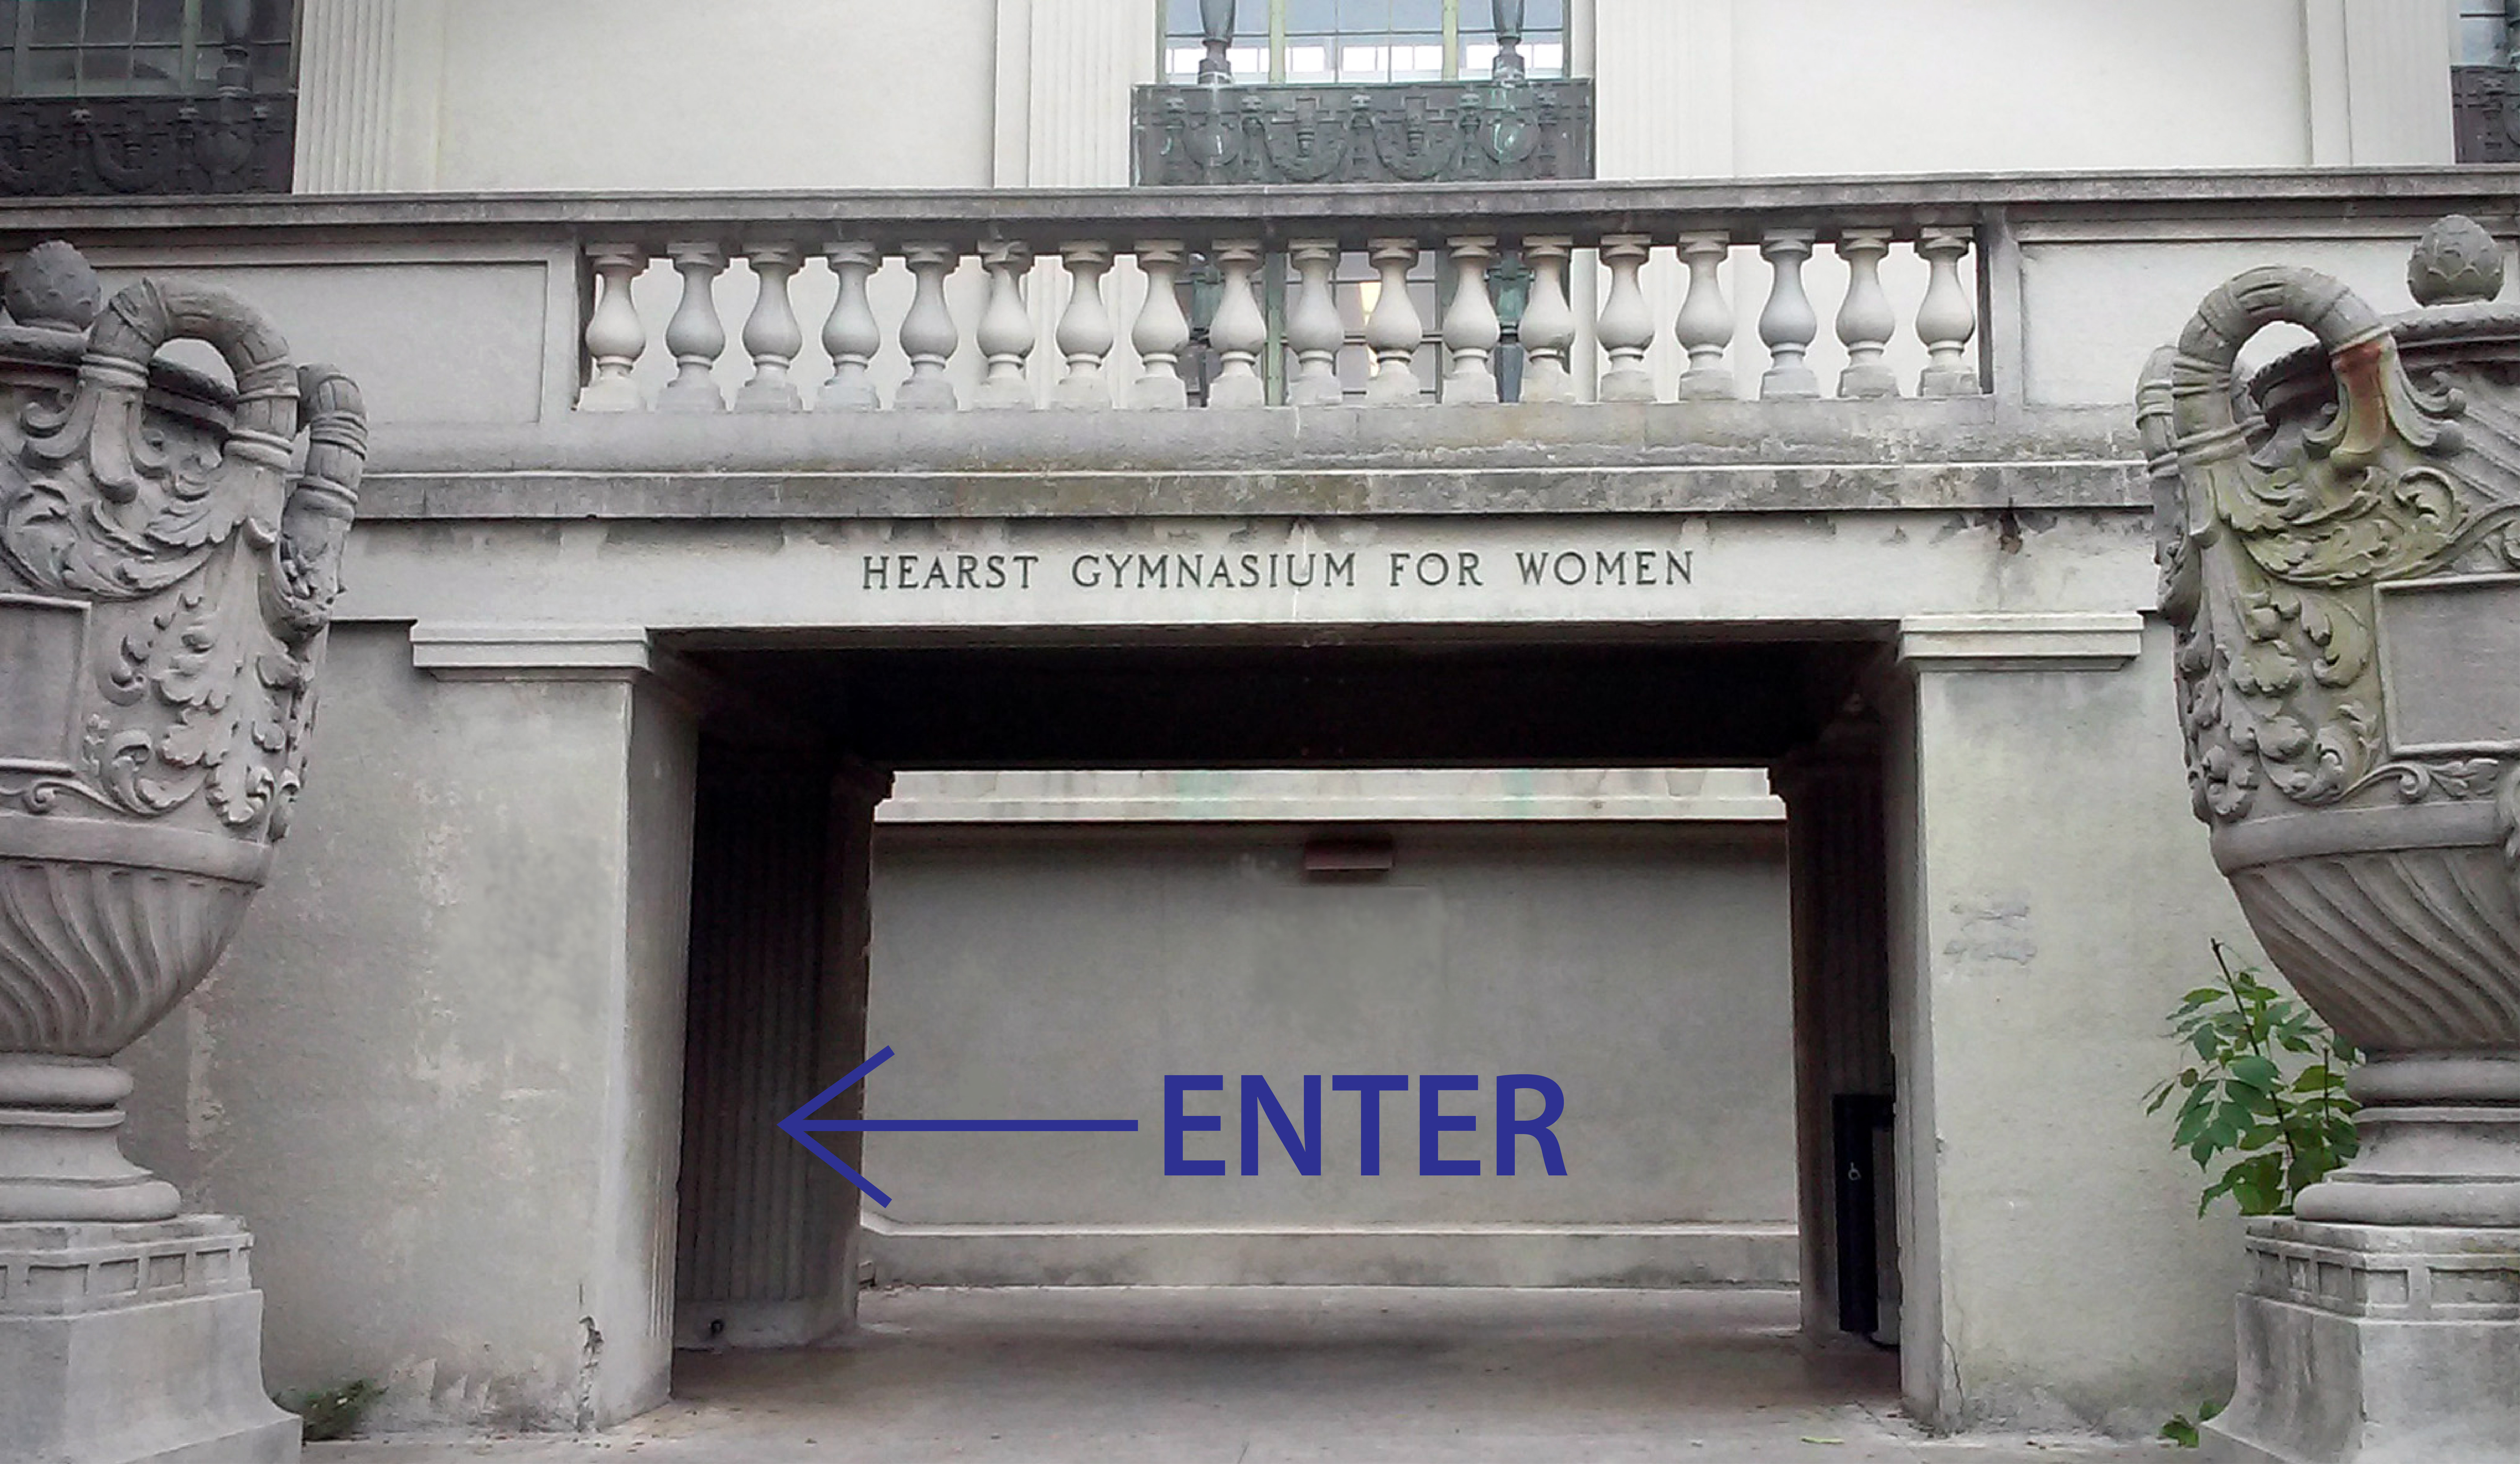 West entrance of Hearst Gymnasium, enter through the left doors.